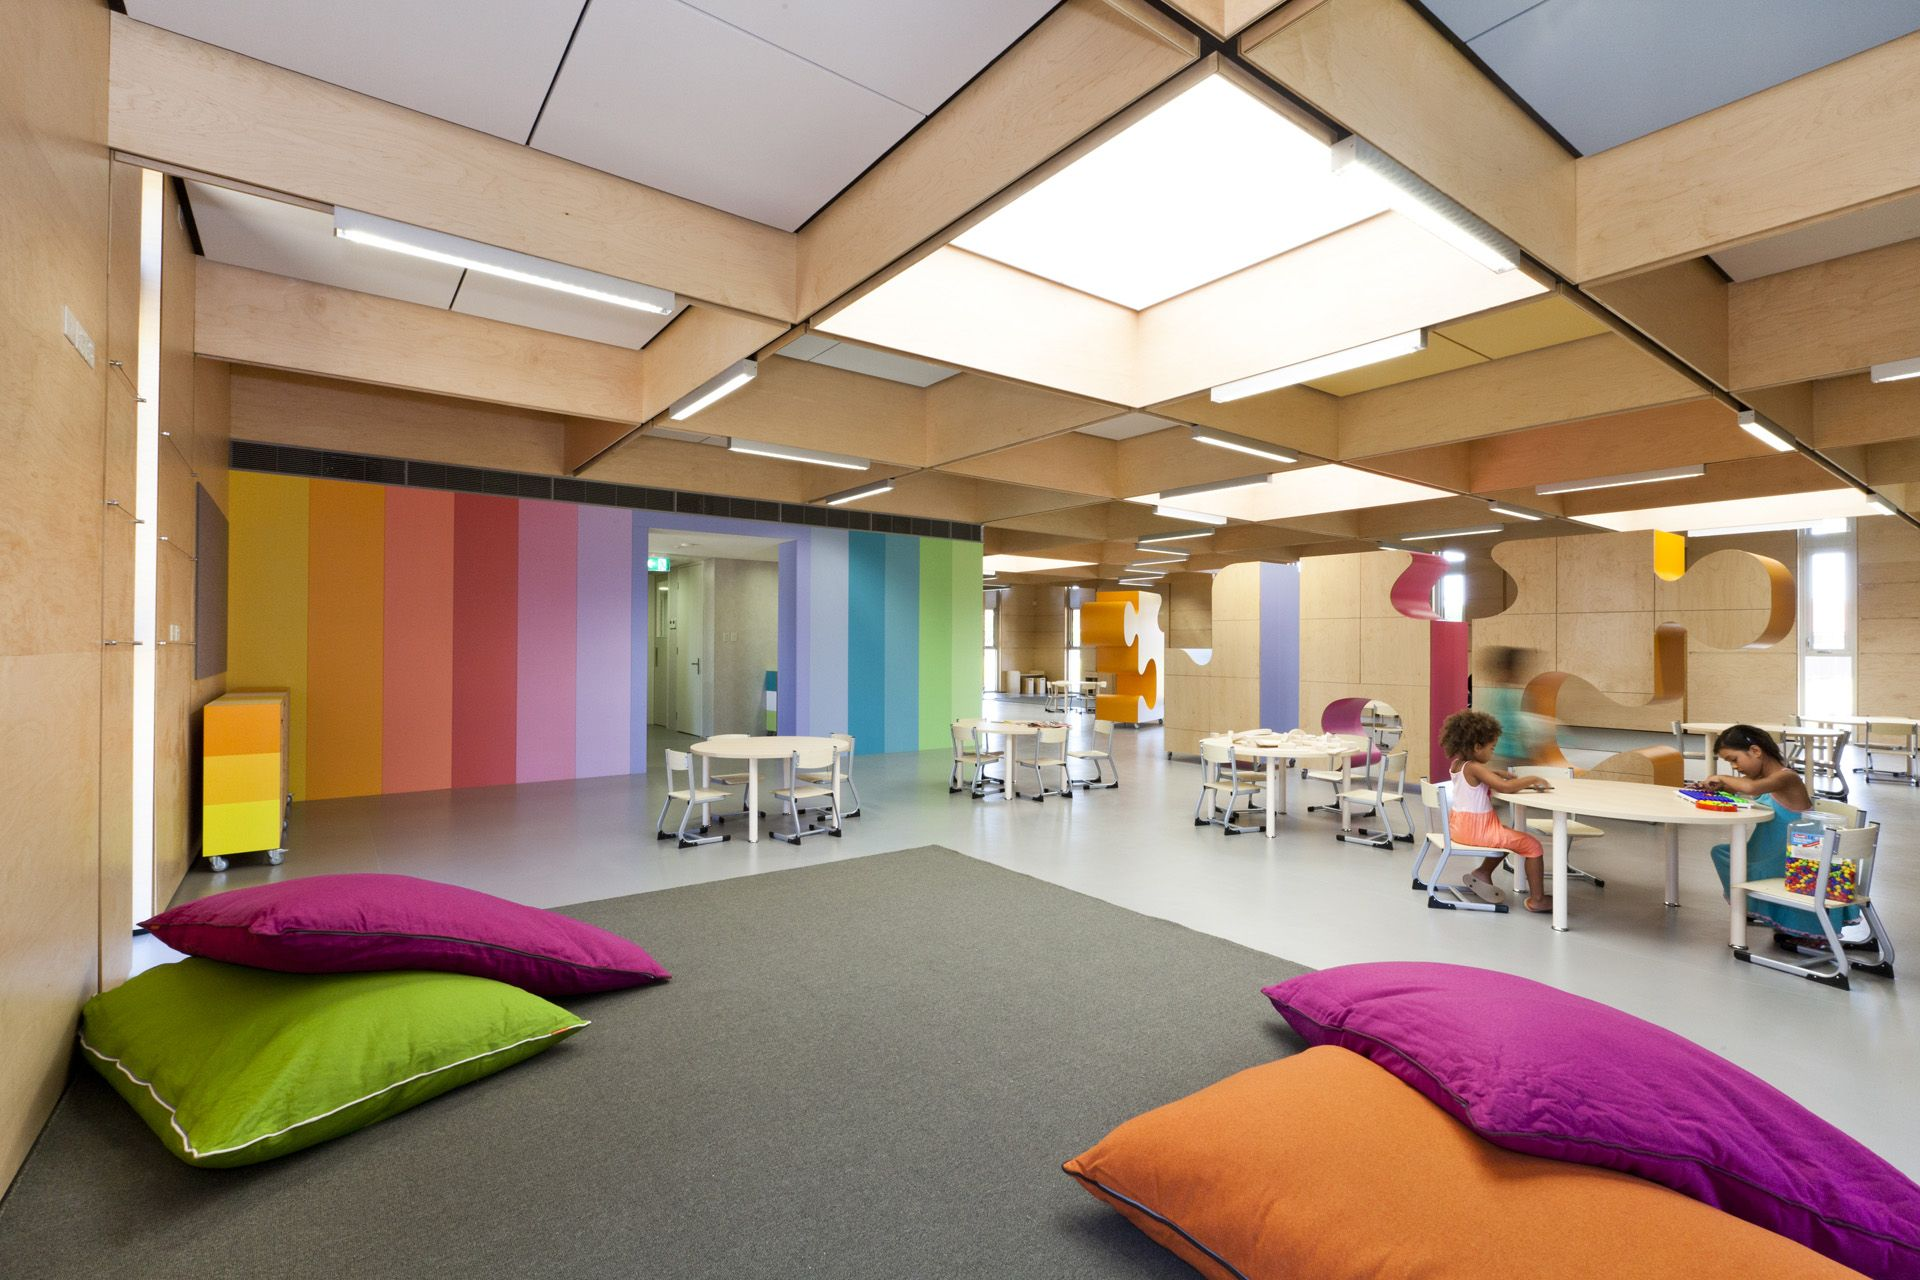 education requirements for interior design - 1000+ images about Interior Design Schools on Pinterest ...